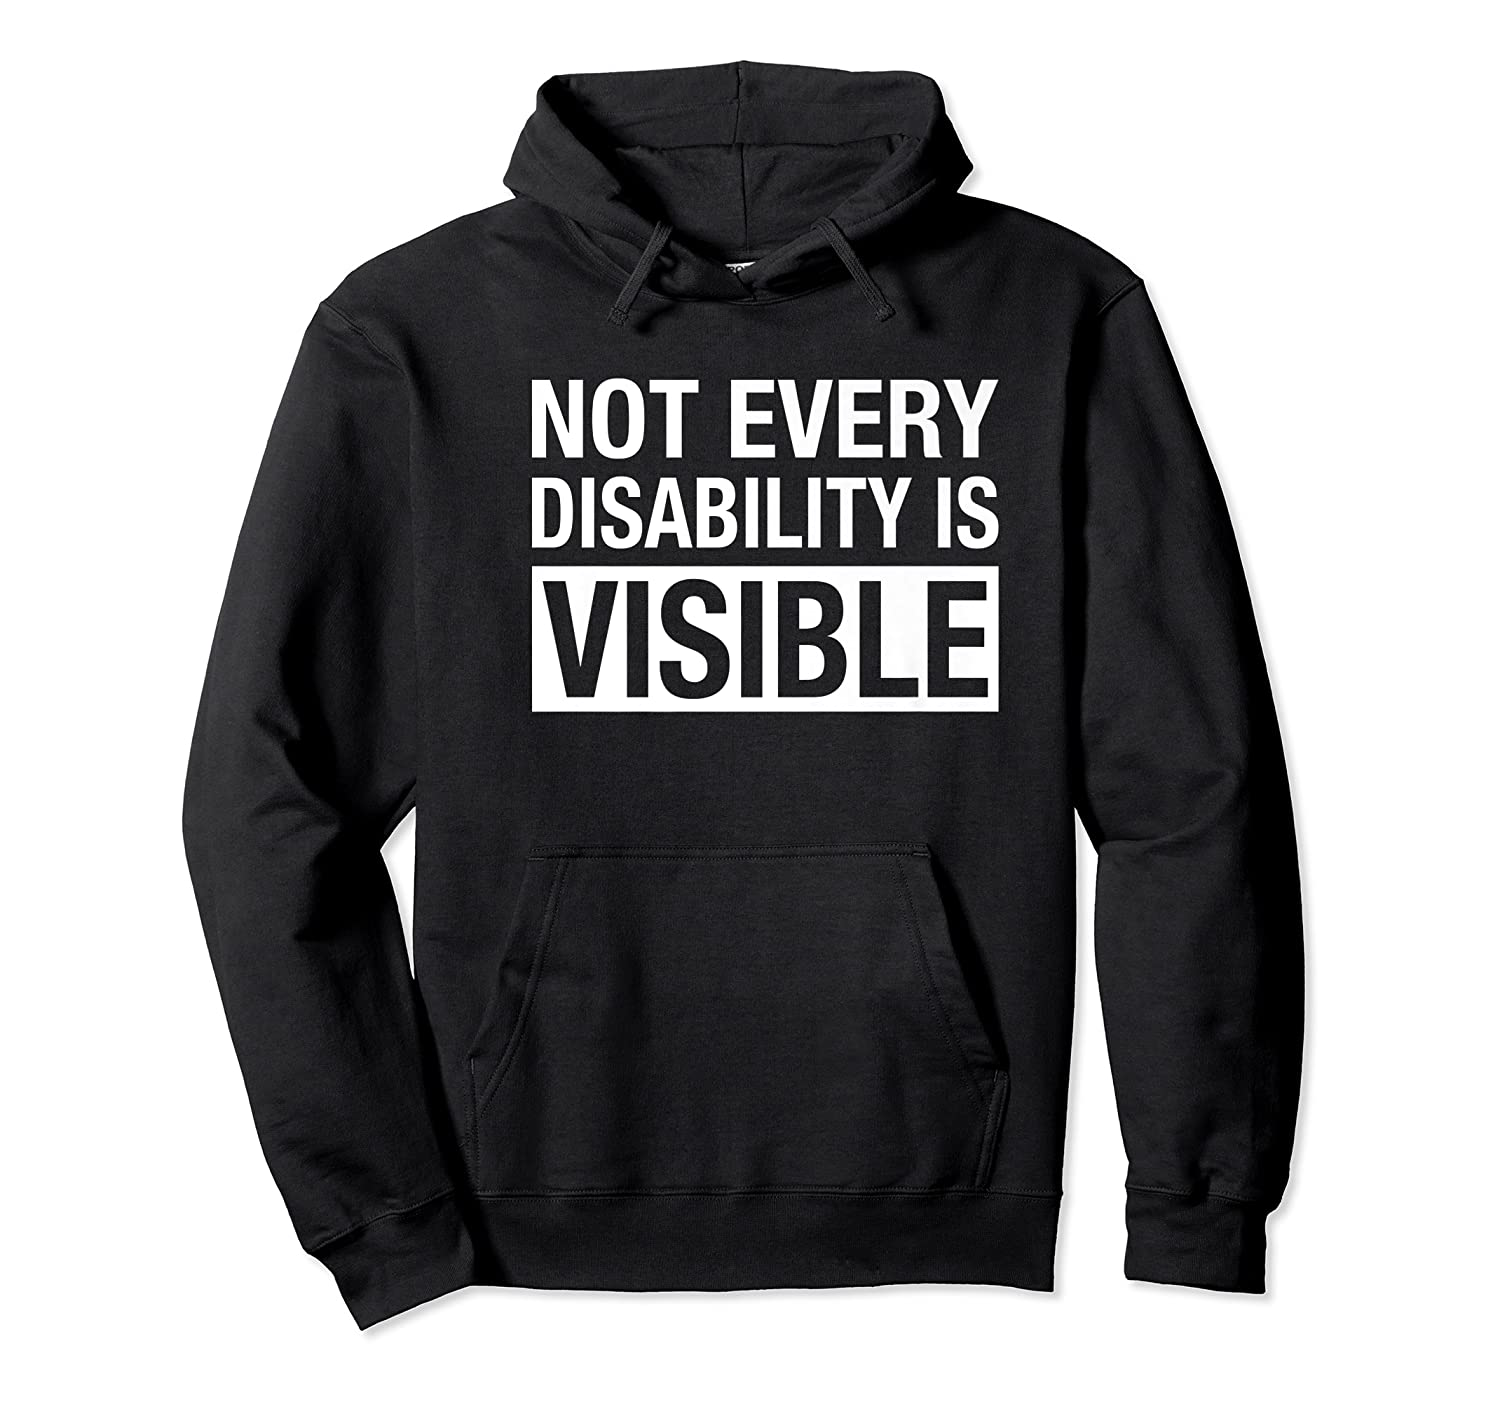 Tal Health Awareness Shirts For Support Gift Premium T-shirt Unisex Pullover Hoodie